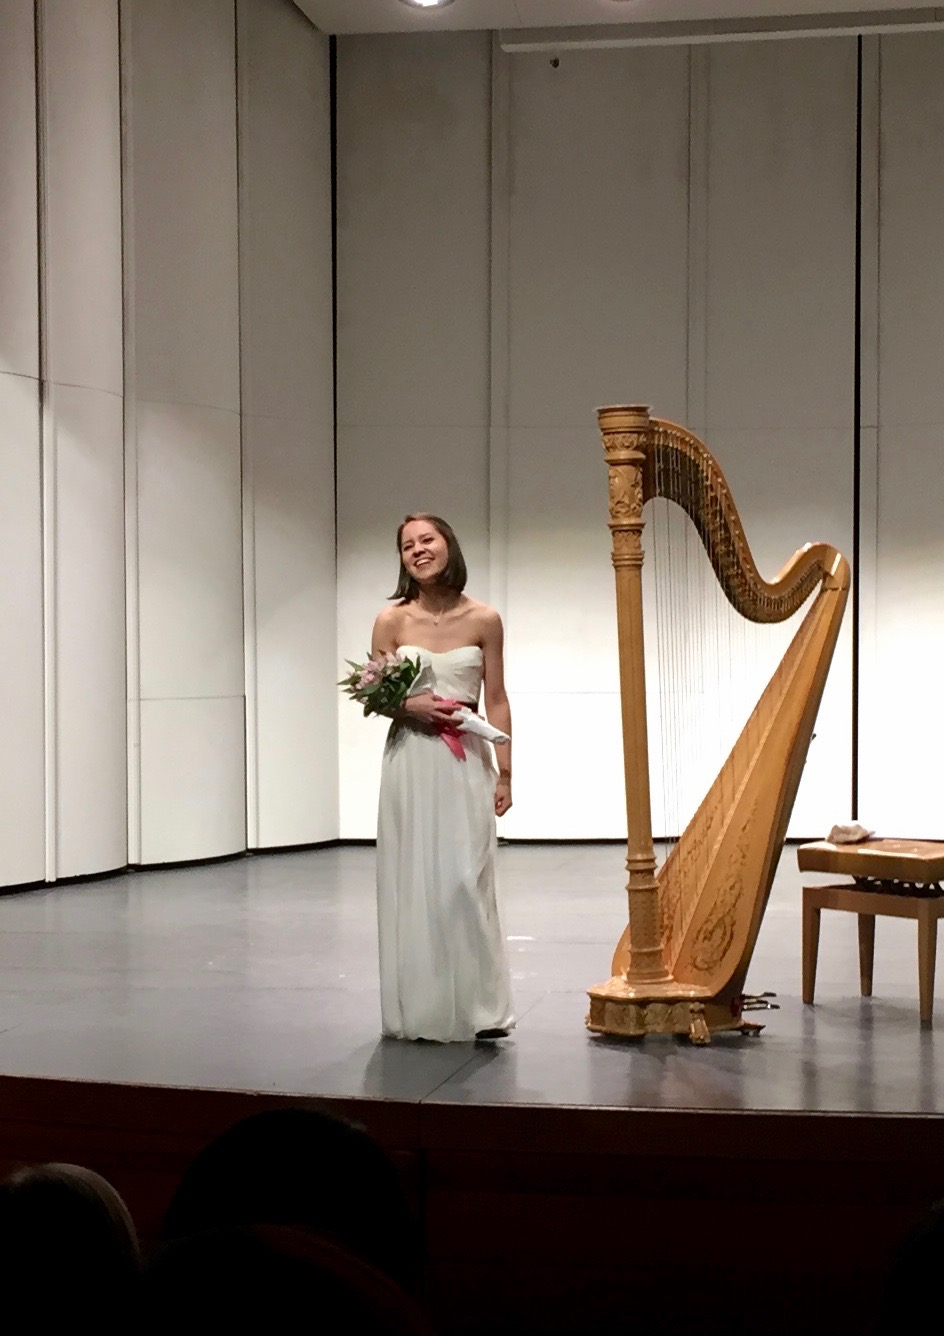 After a solo recital at Carnegie Mellon University, 2017